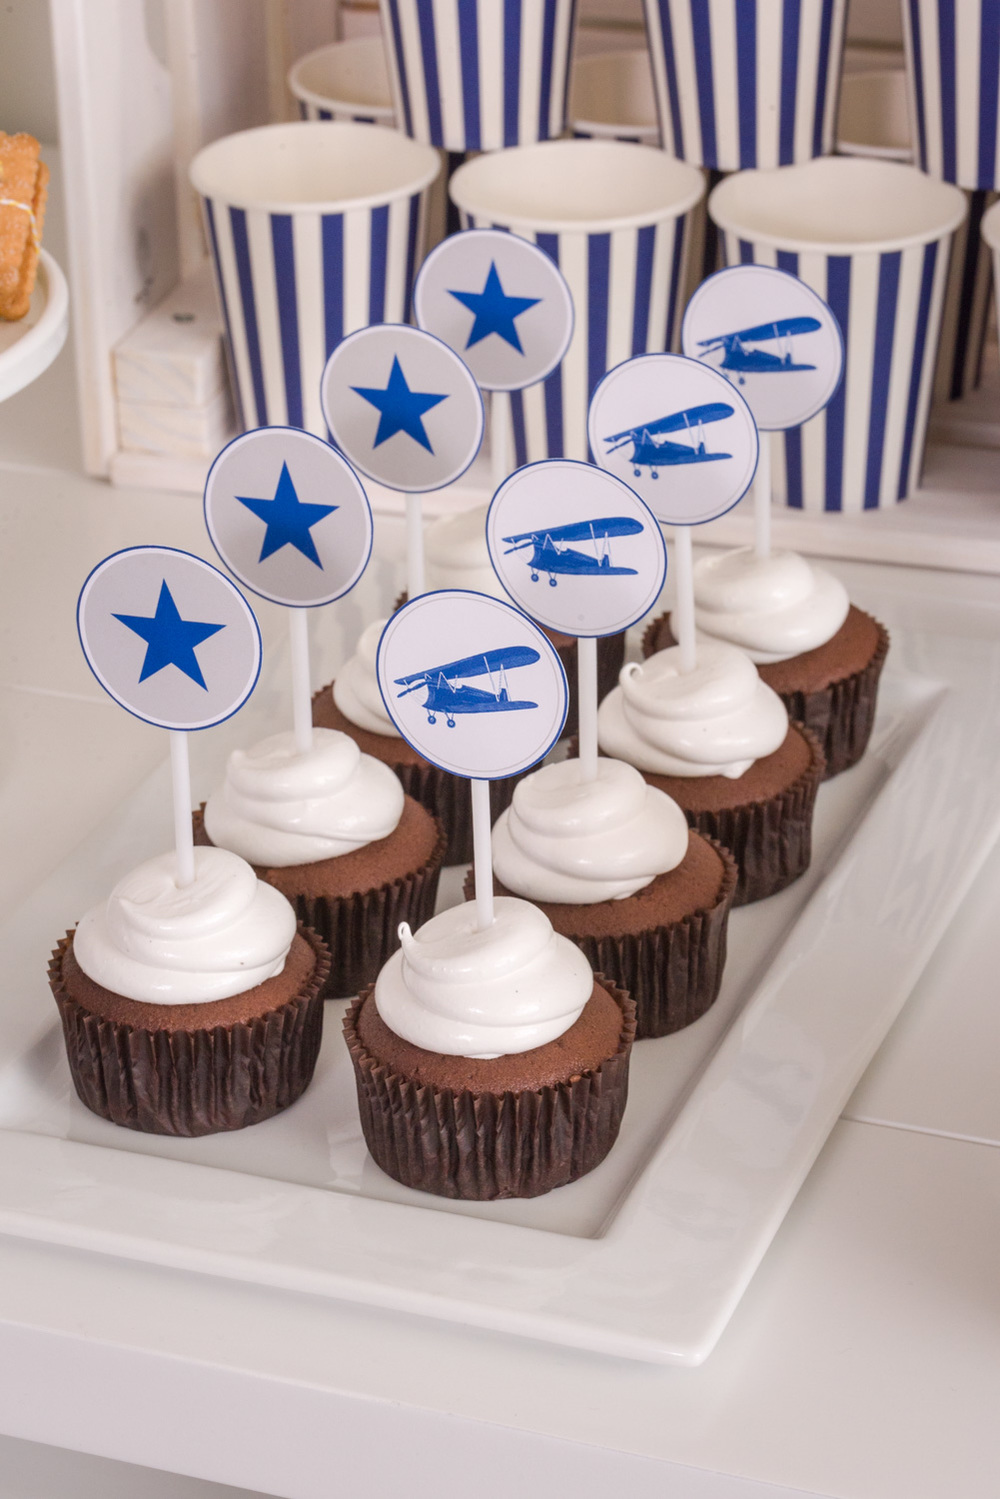 Vintage aeroplane cloud cupcakes by Something Wonderful Happened